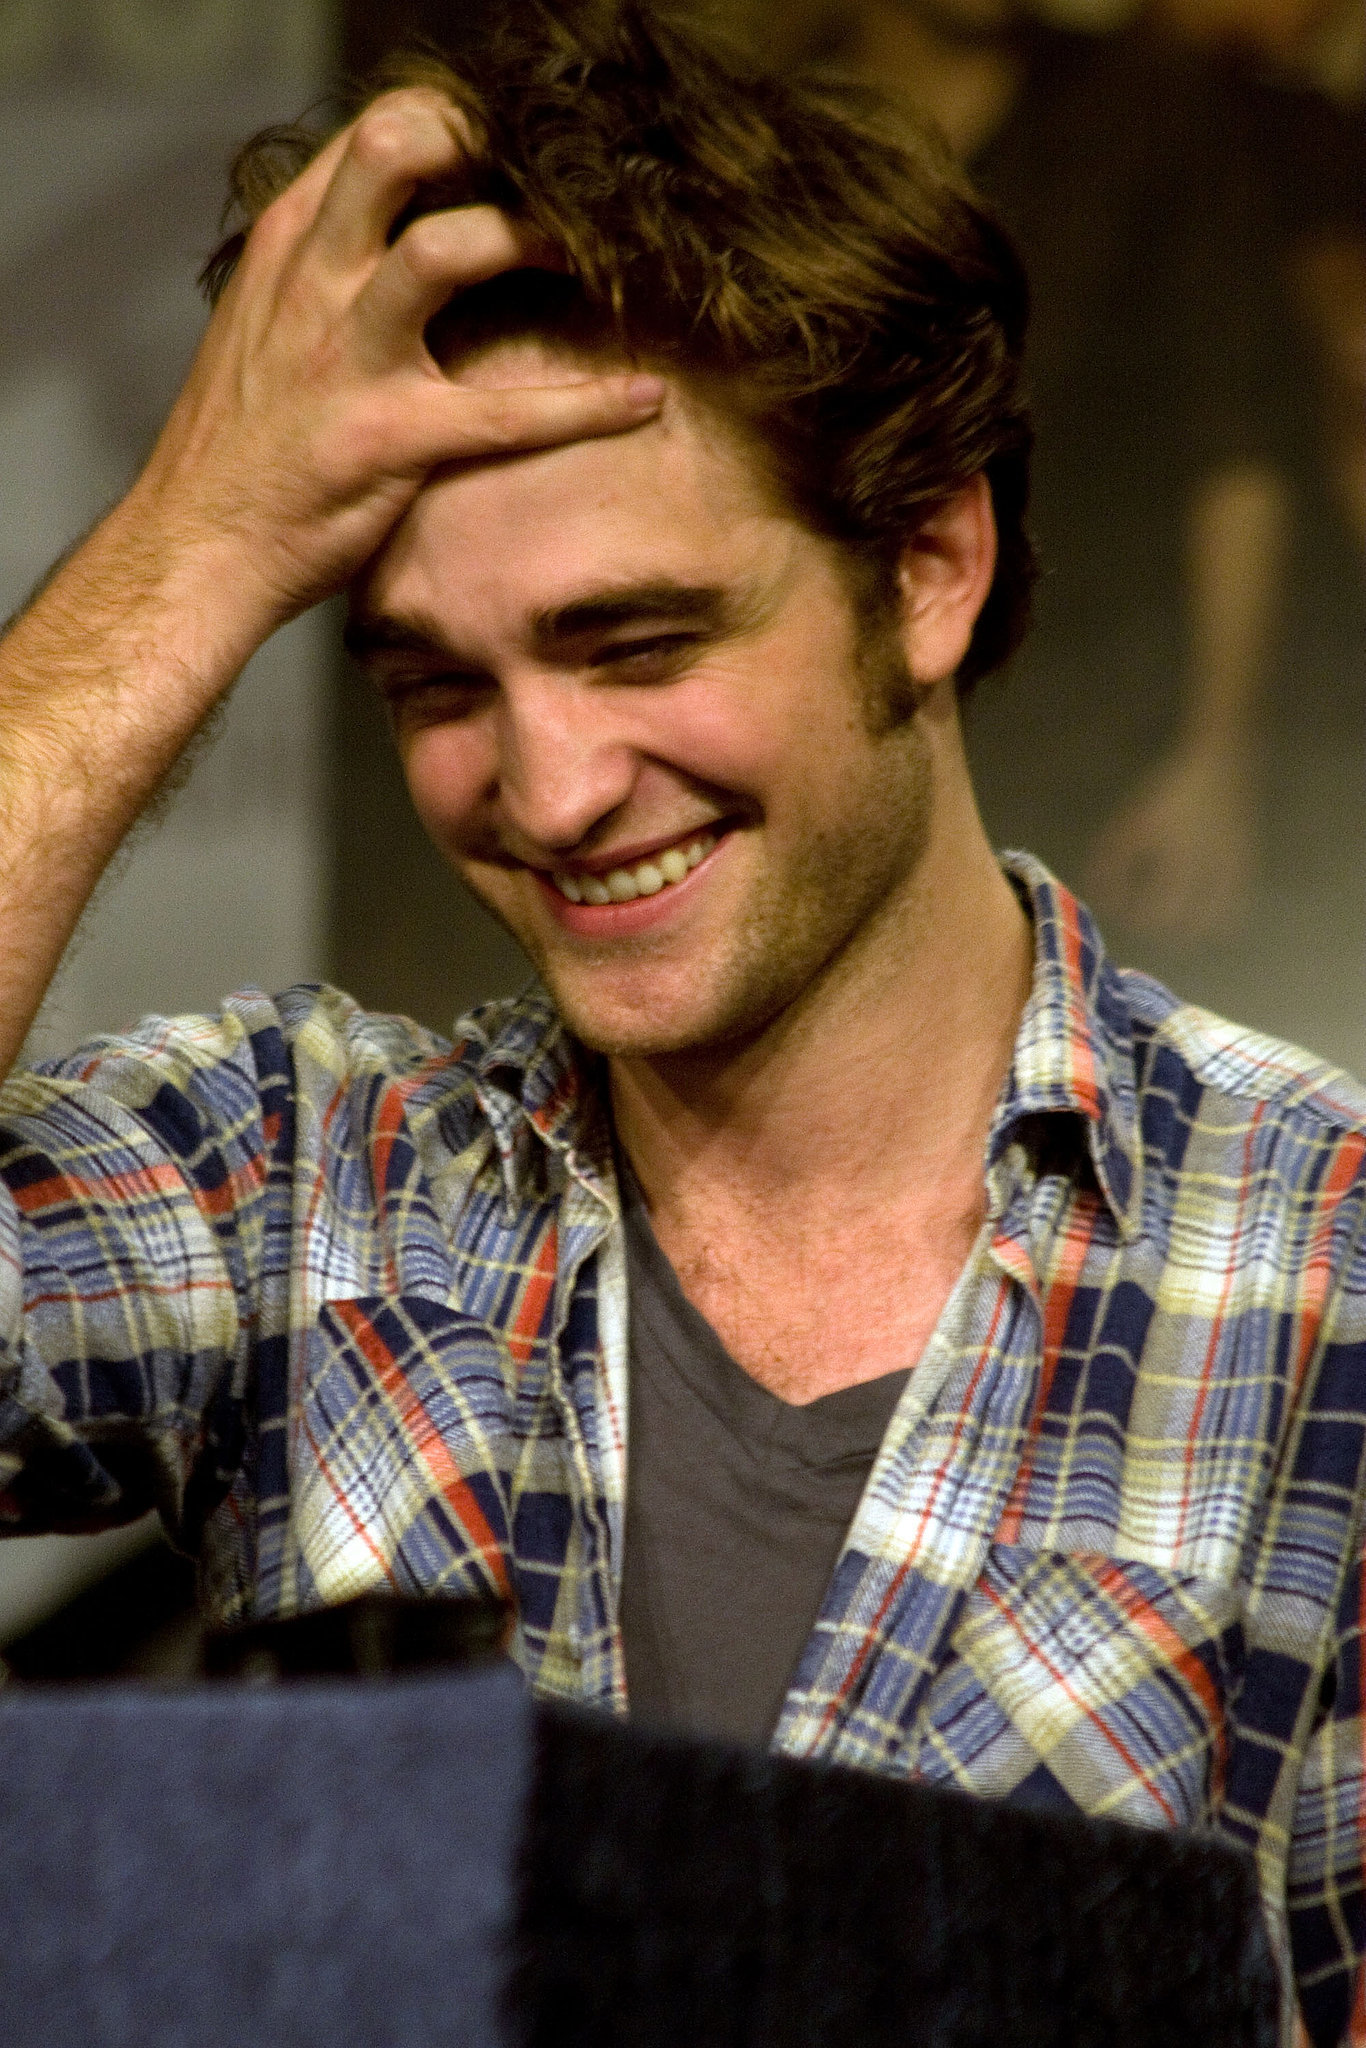 Old habits die hard for the New Moon star, who couldn't help playing with his hair during a July 2009 press conference in San Diego.